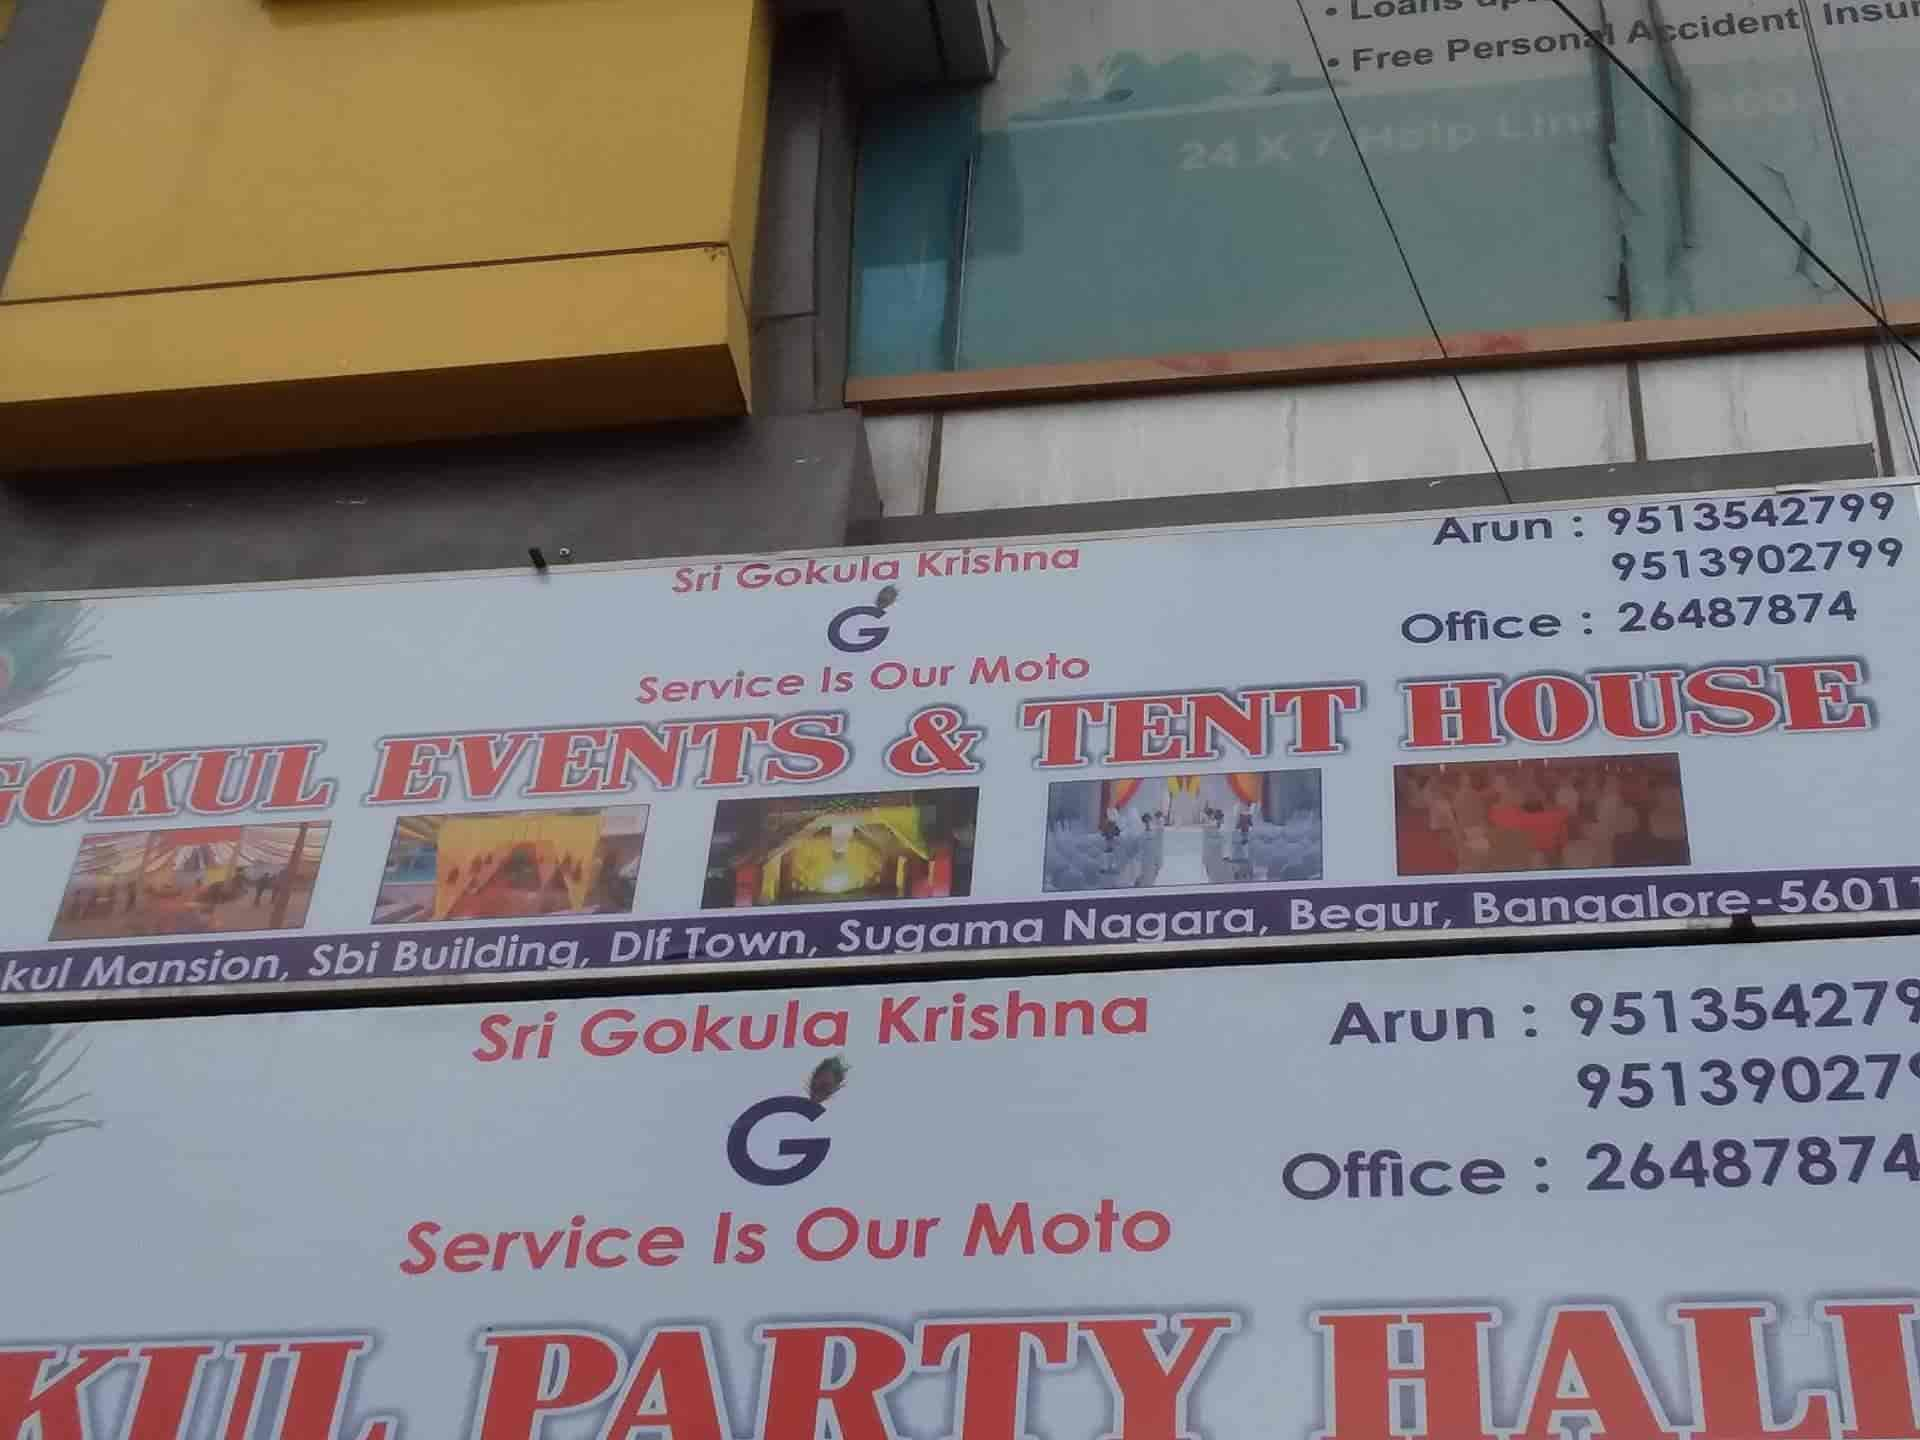 Gokul Events & Tent House, DLF New Town - Tents On Hire in Bangalore